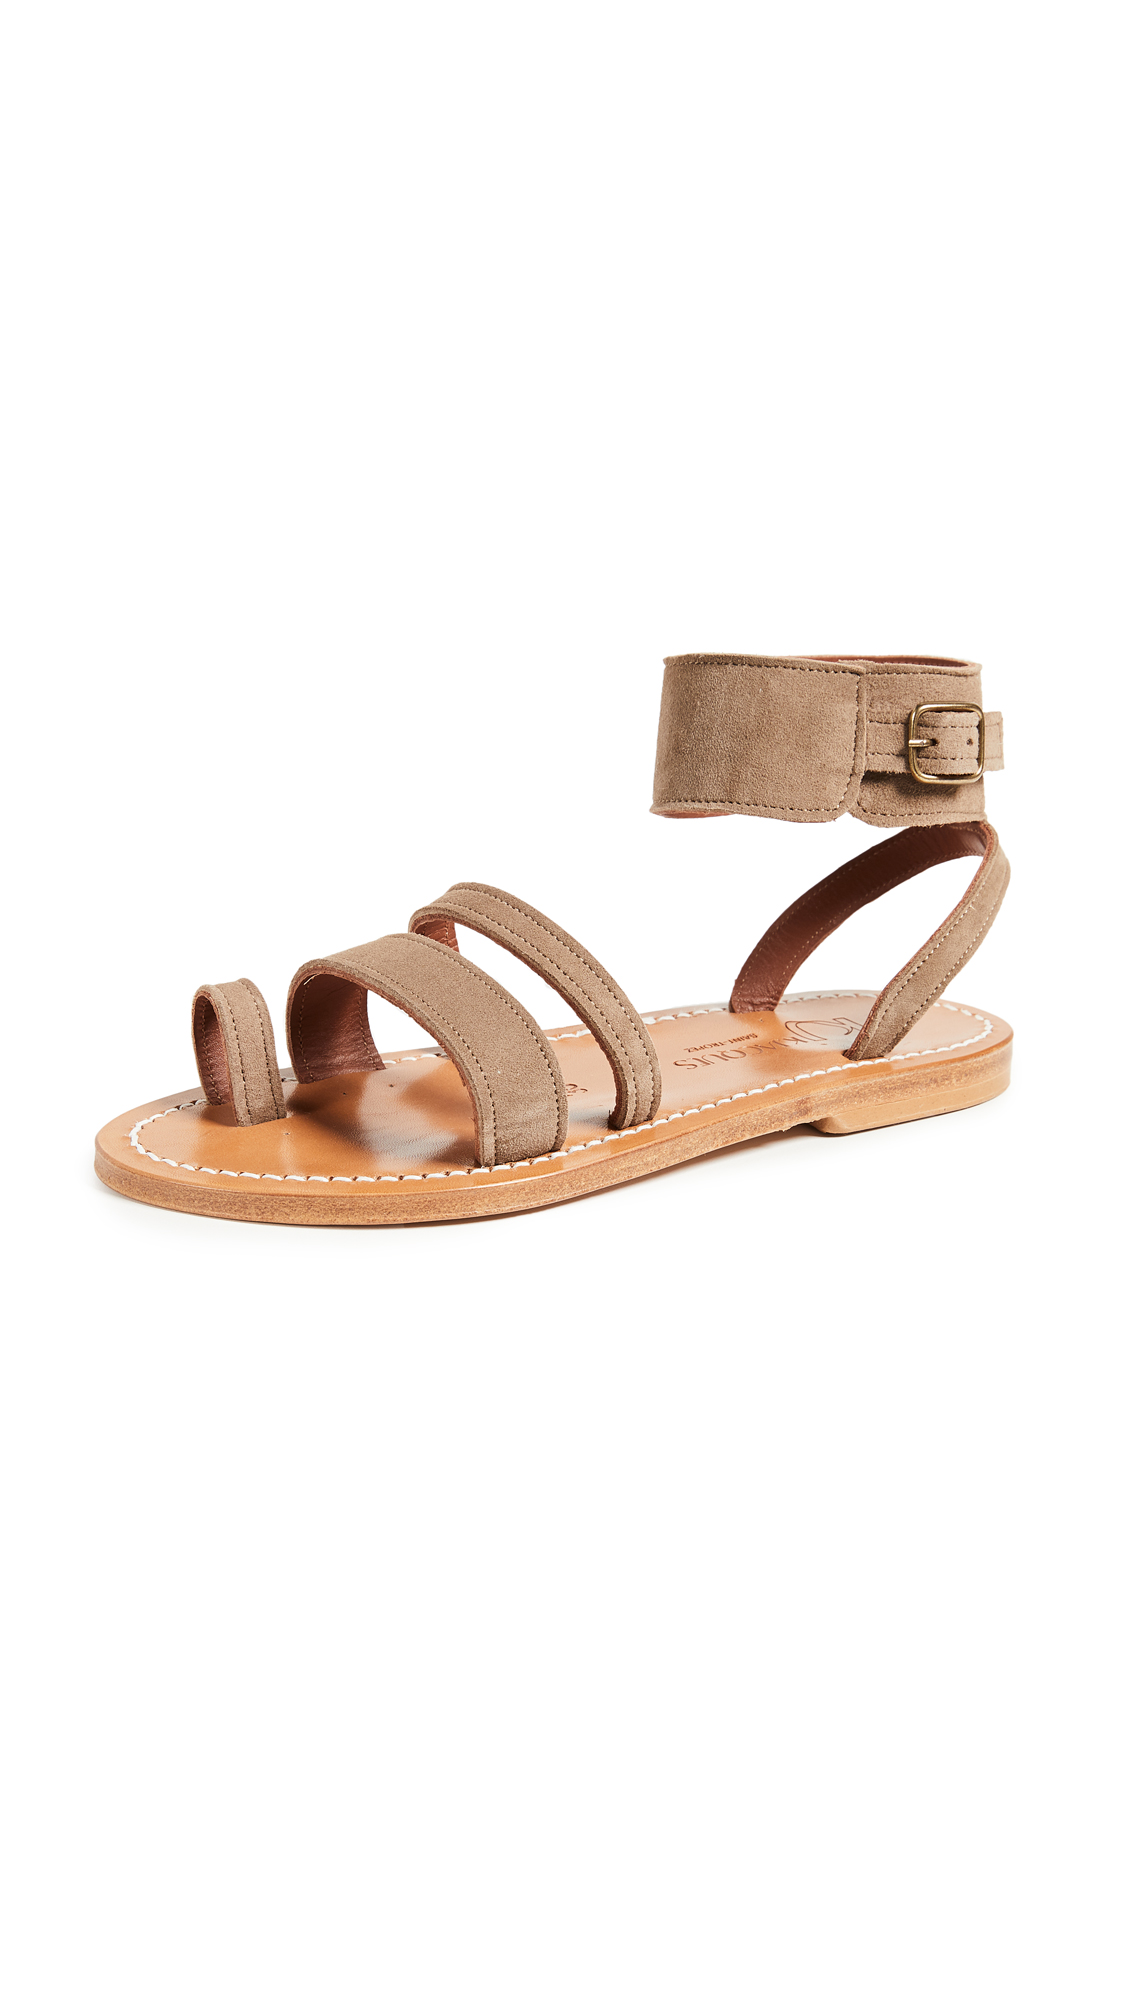 K. Jacques Ares Toe Ring Slide Sandals - Velours Fango